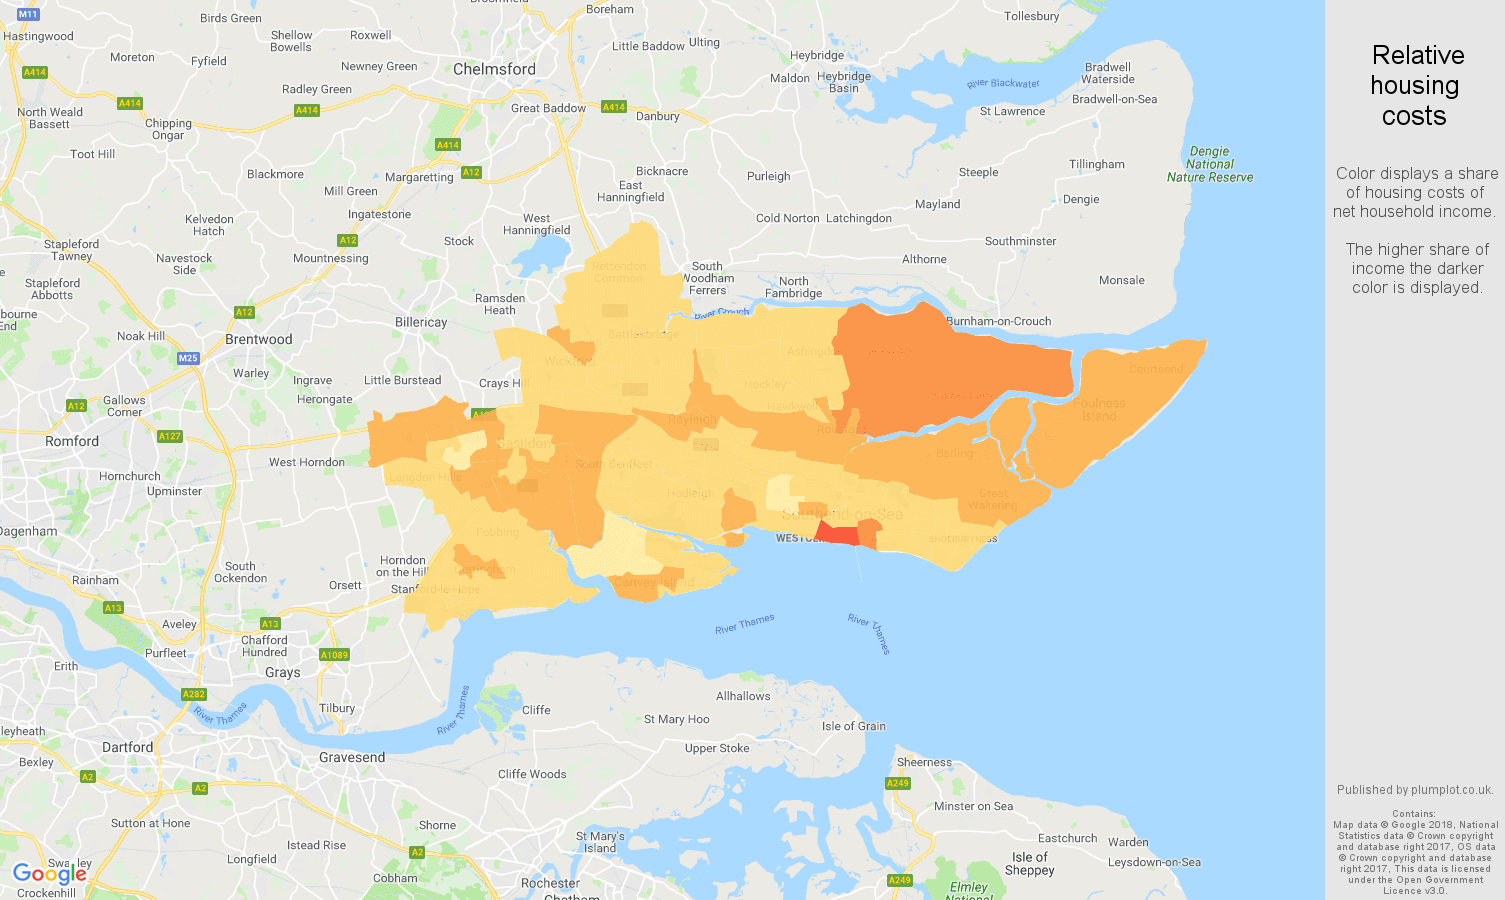 Southend on Sea relative housing costs map